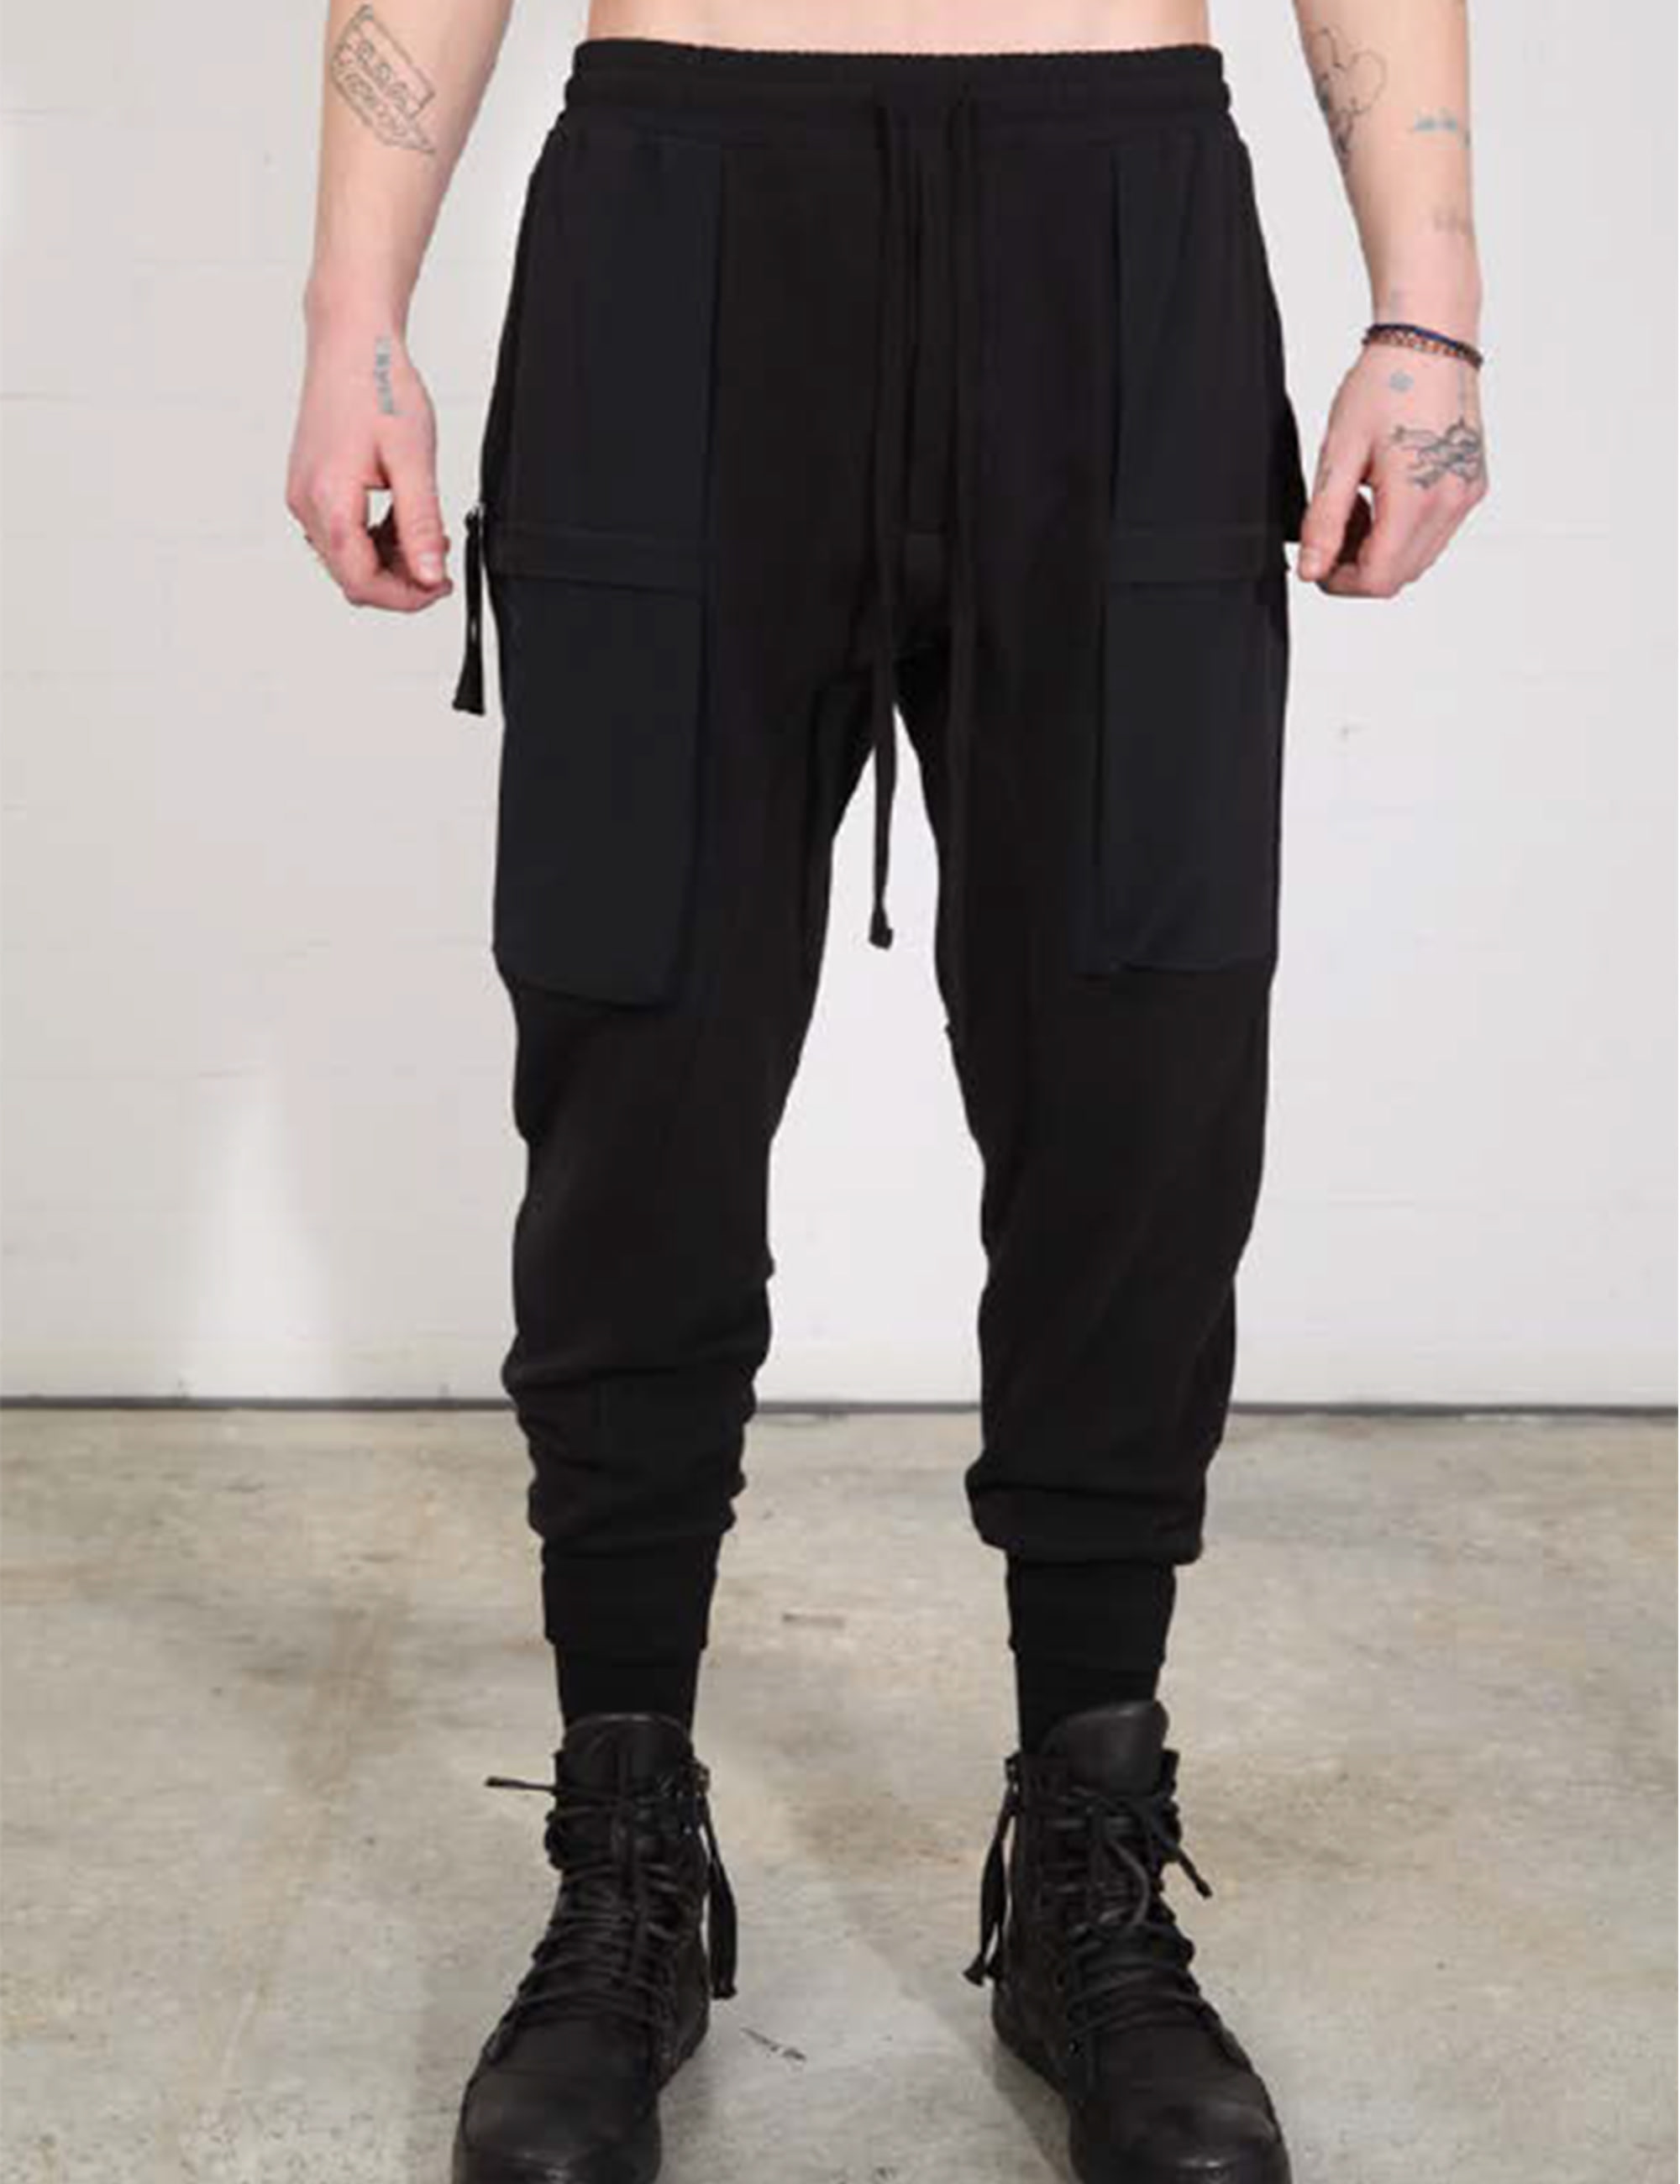 MEN HOSE/TROUSERS_M ST 195-0-1_BLACK